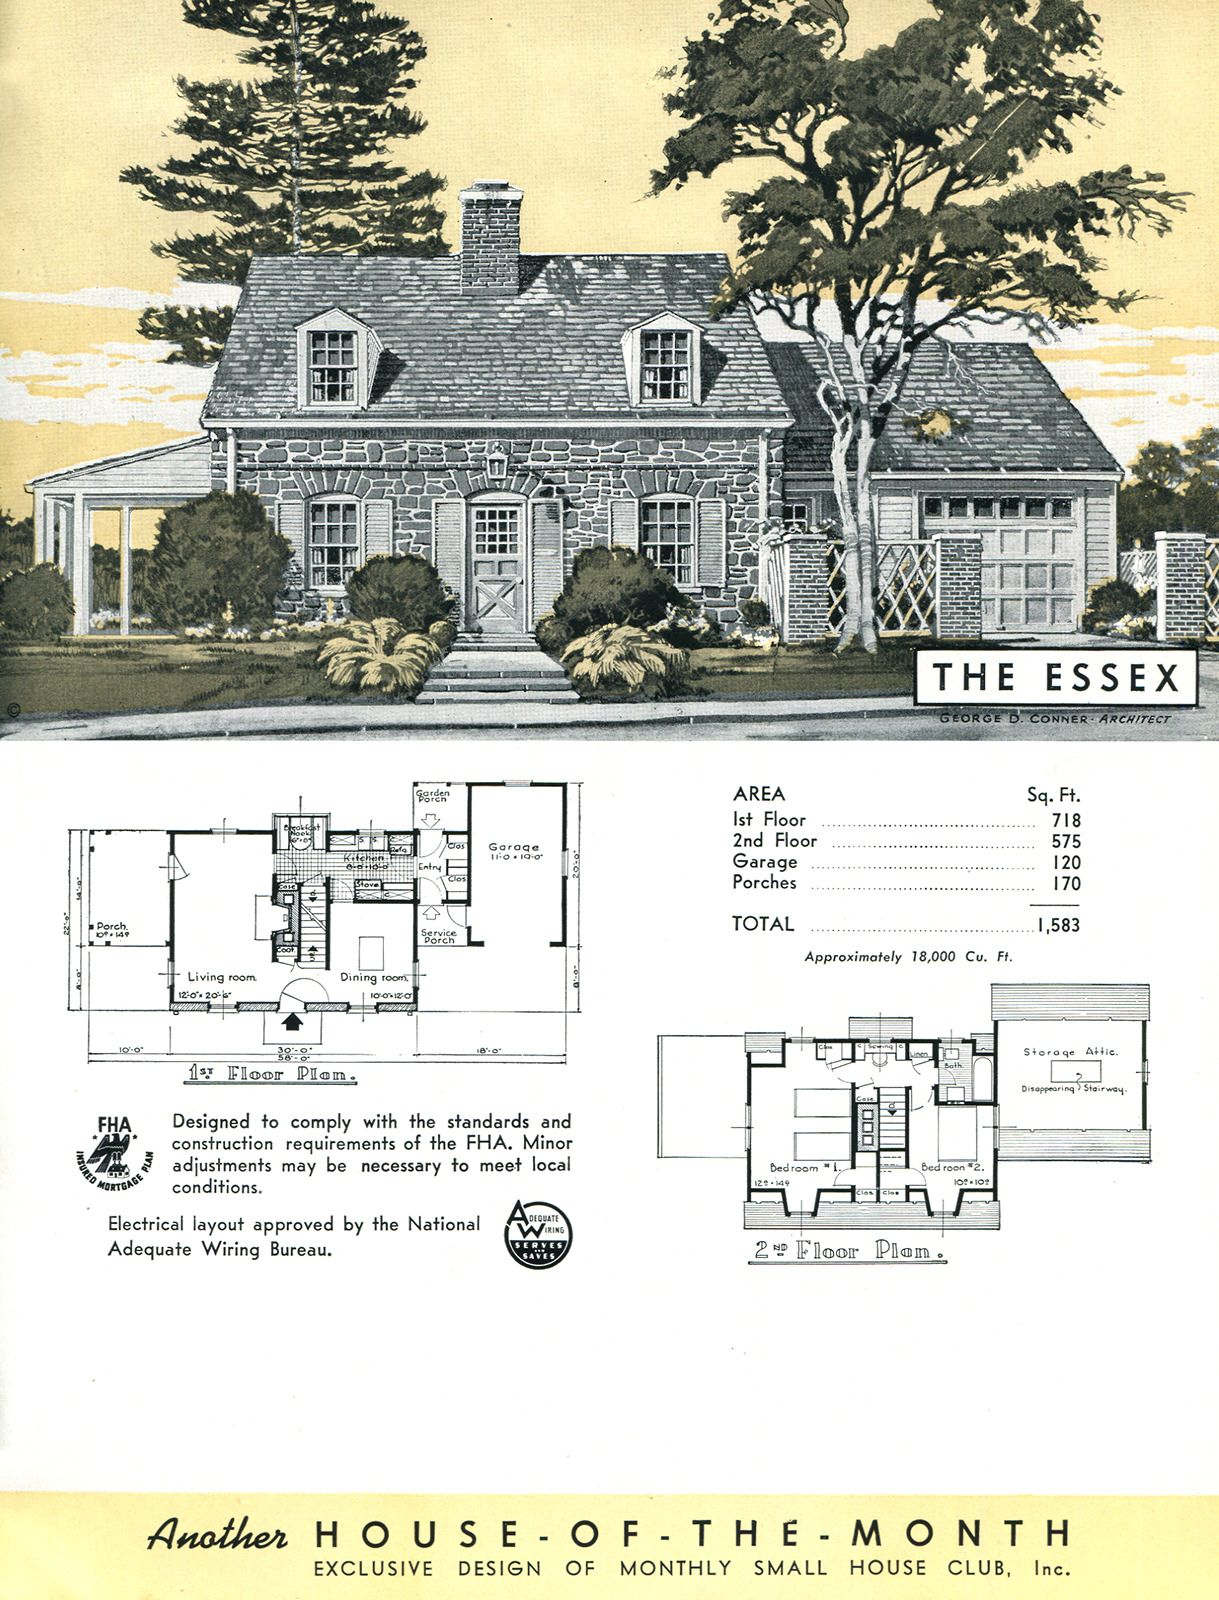 Vintage Home Plans United States C 1948 The Essex A Colonial Style Vintage House Plans Colonial Style Colonial House Plans